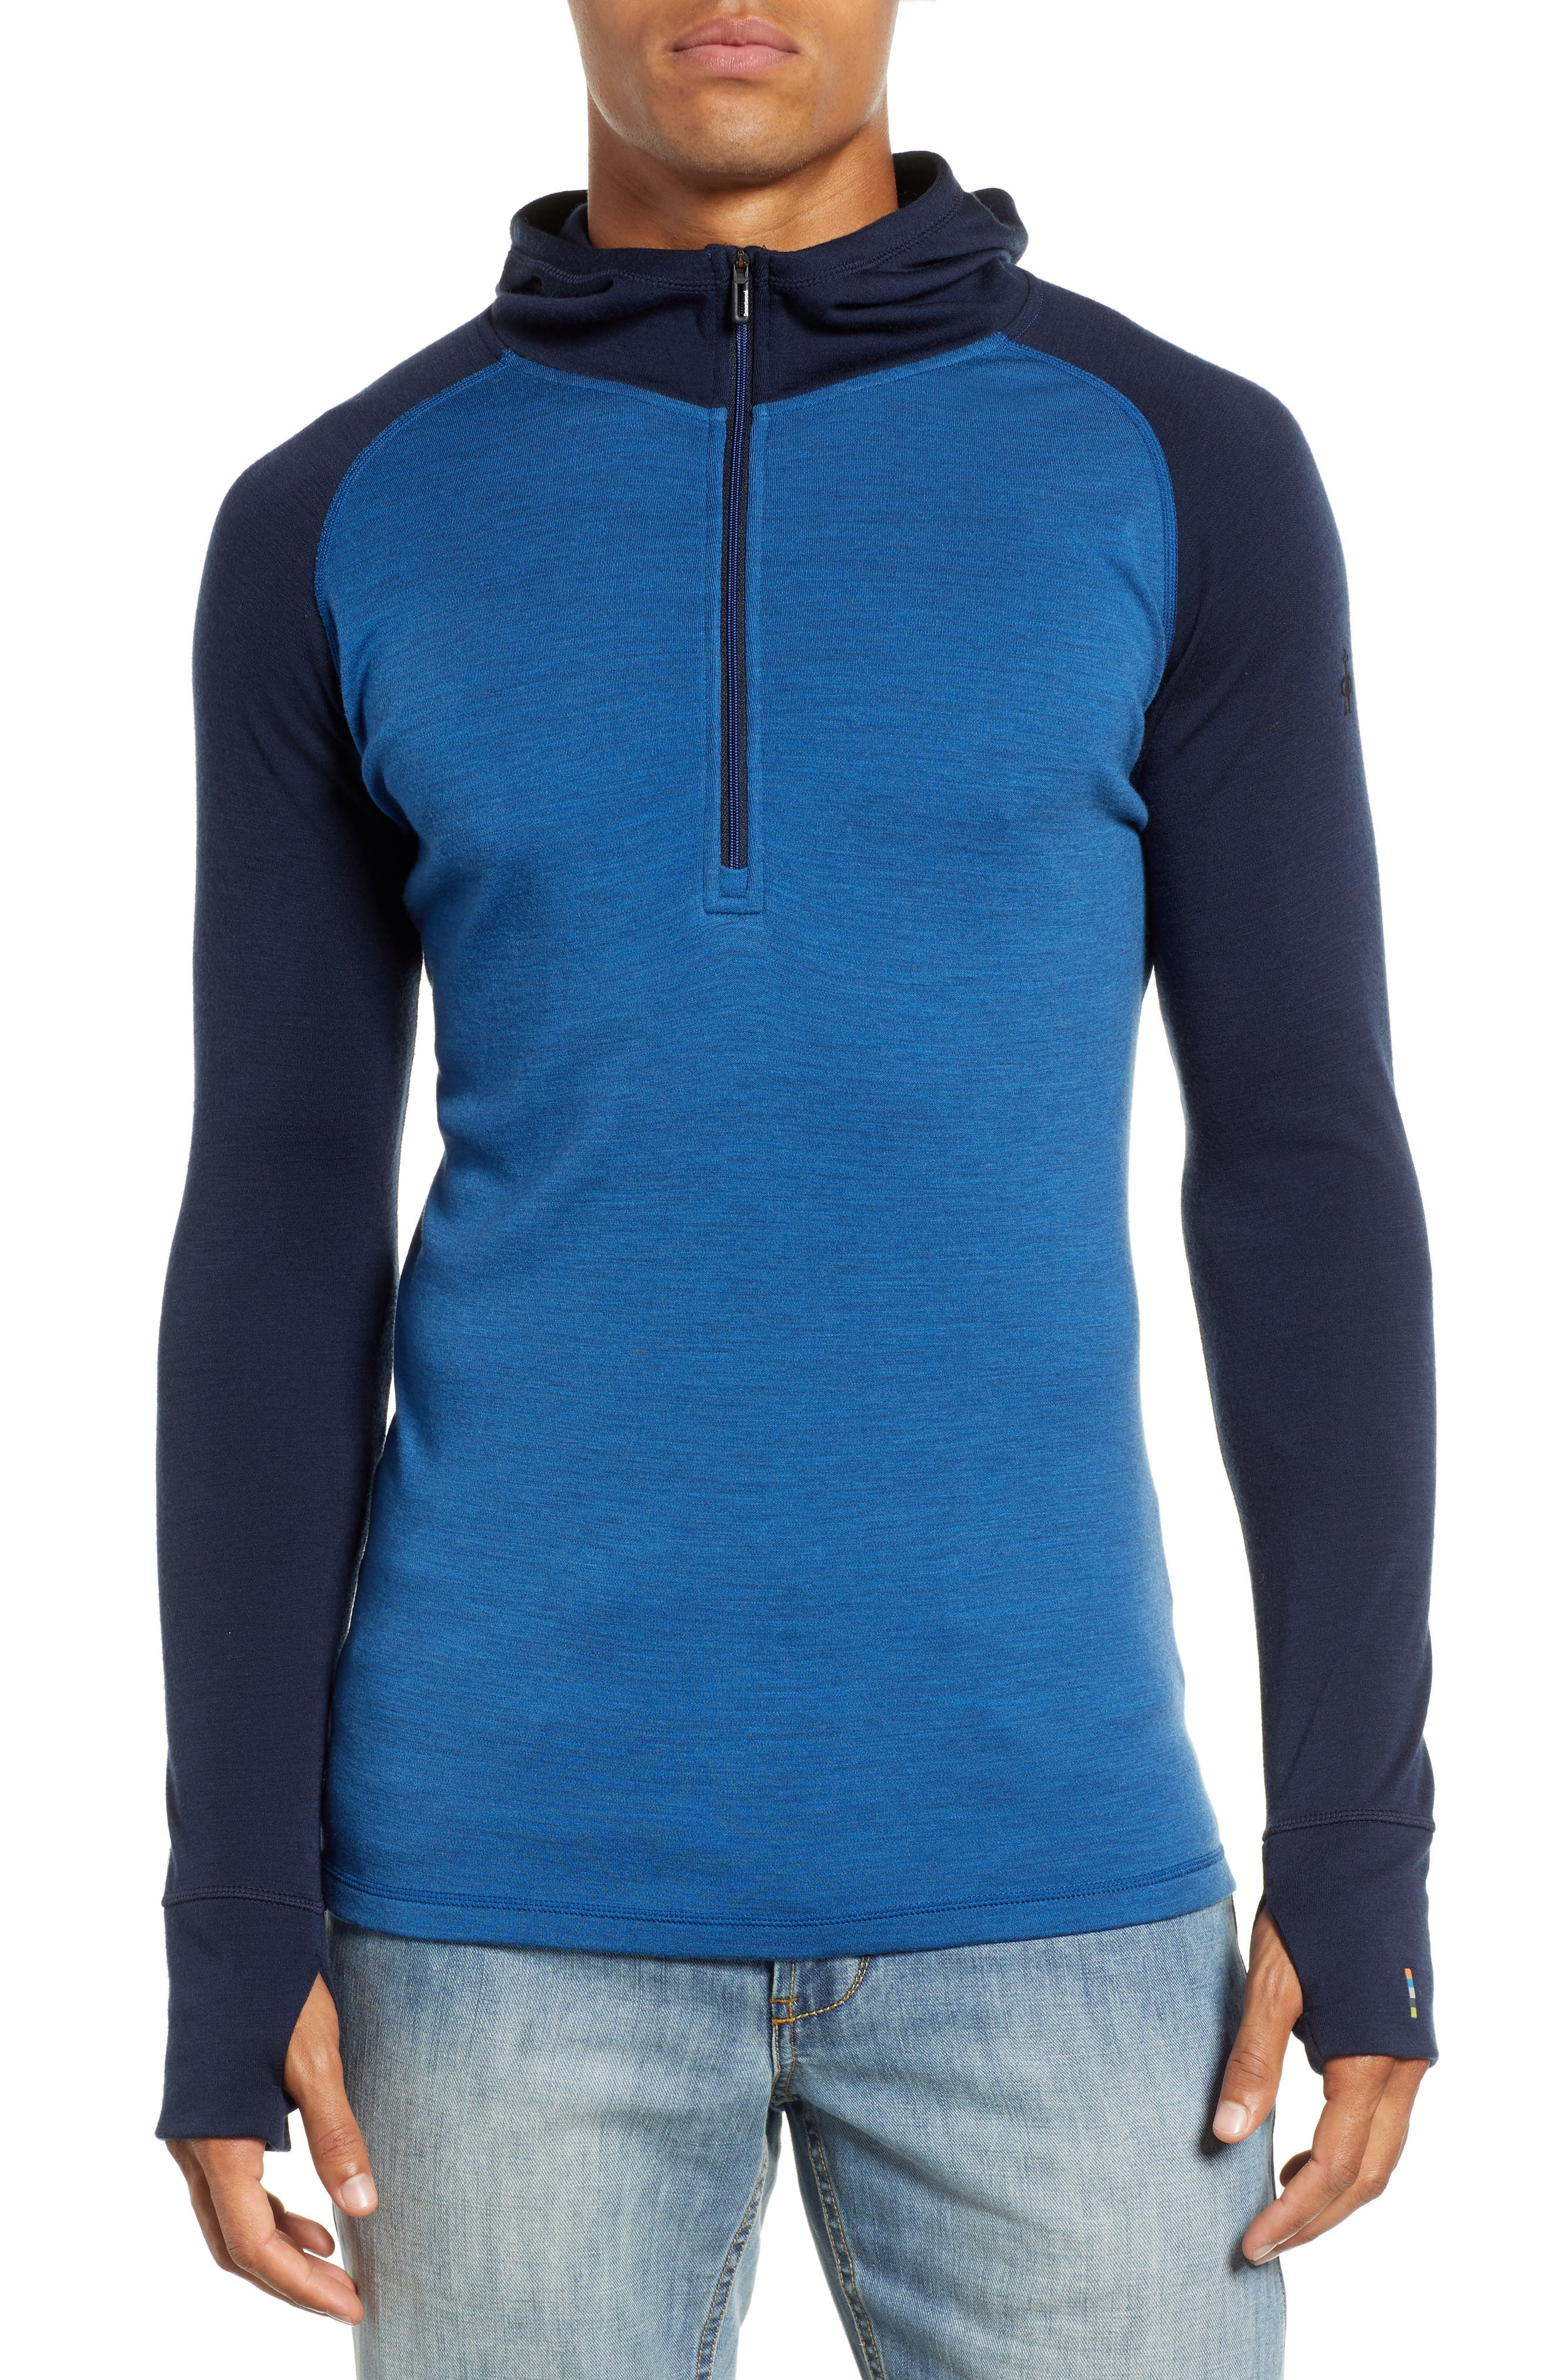 Smartwool Merino 250 Base Layer Hooded Pullover, Blue